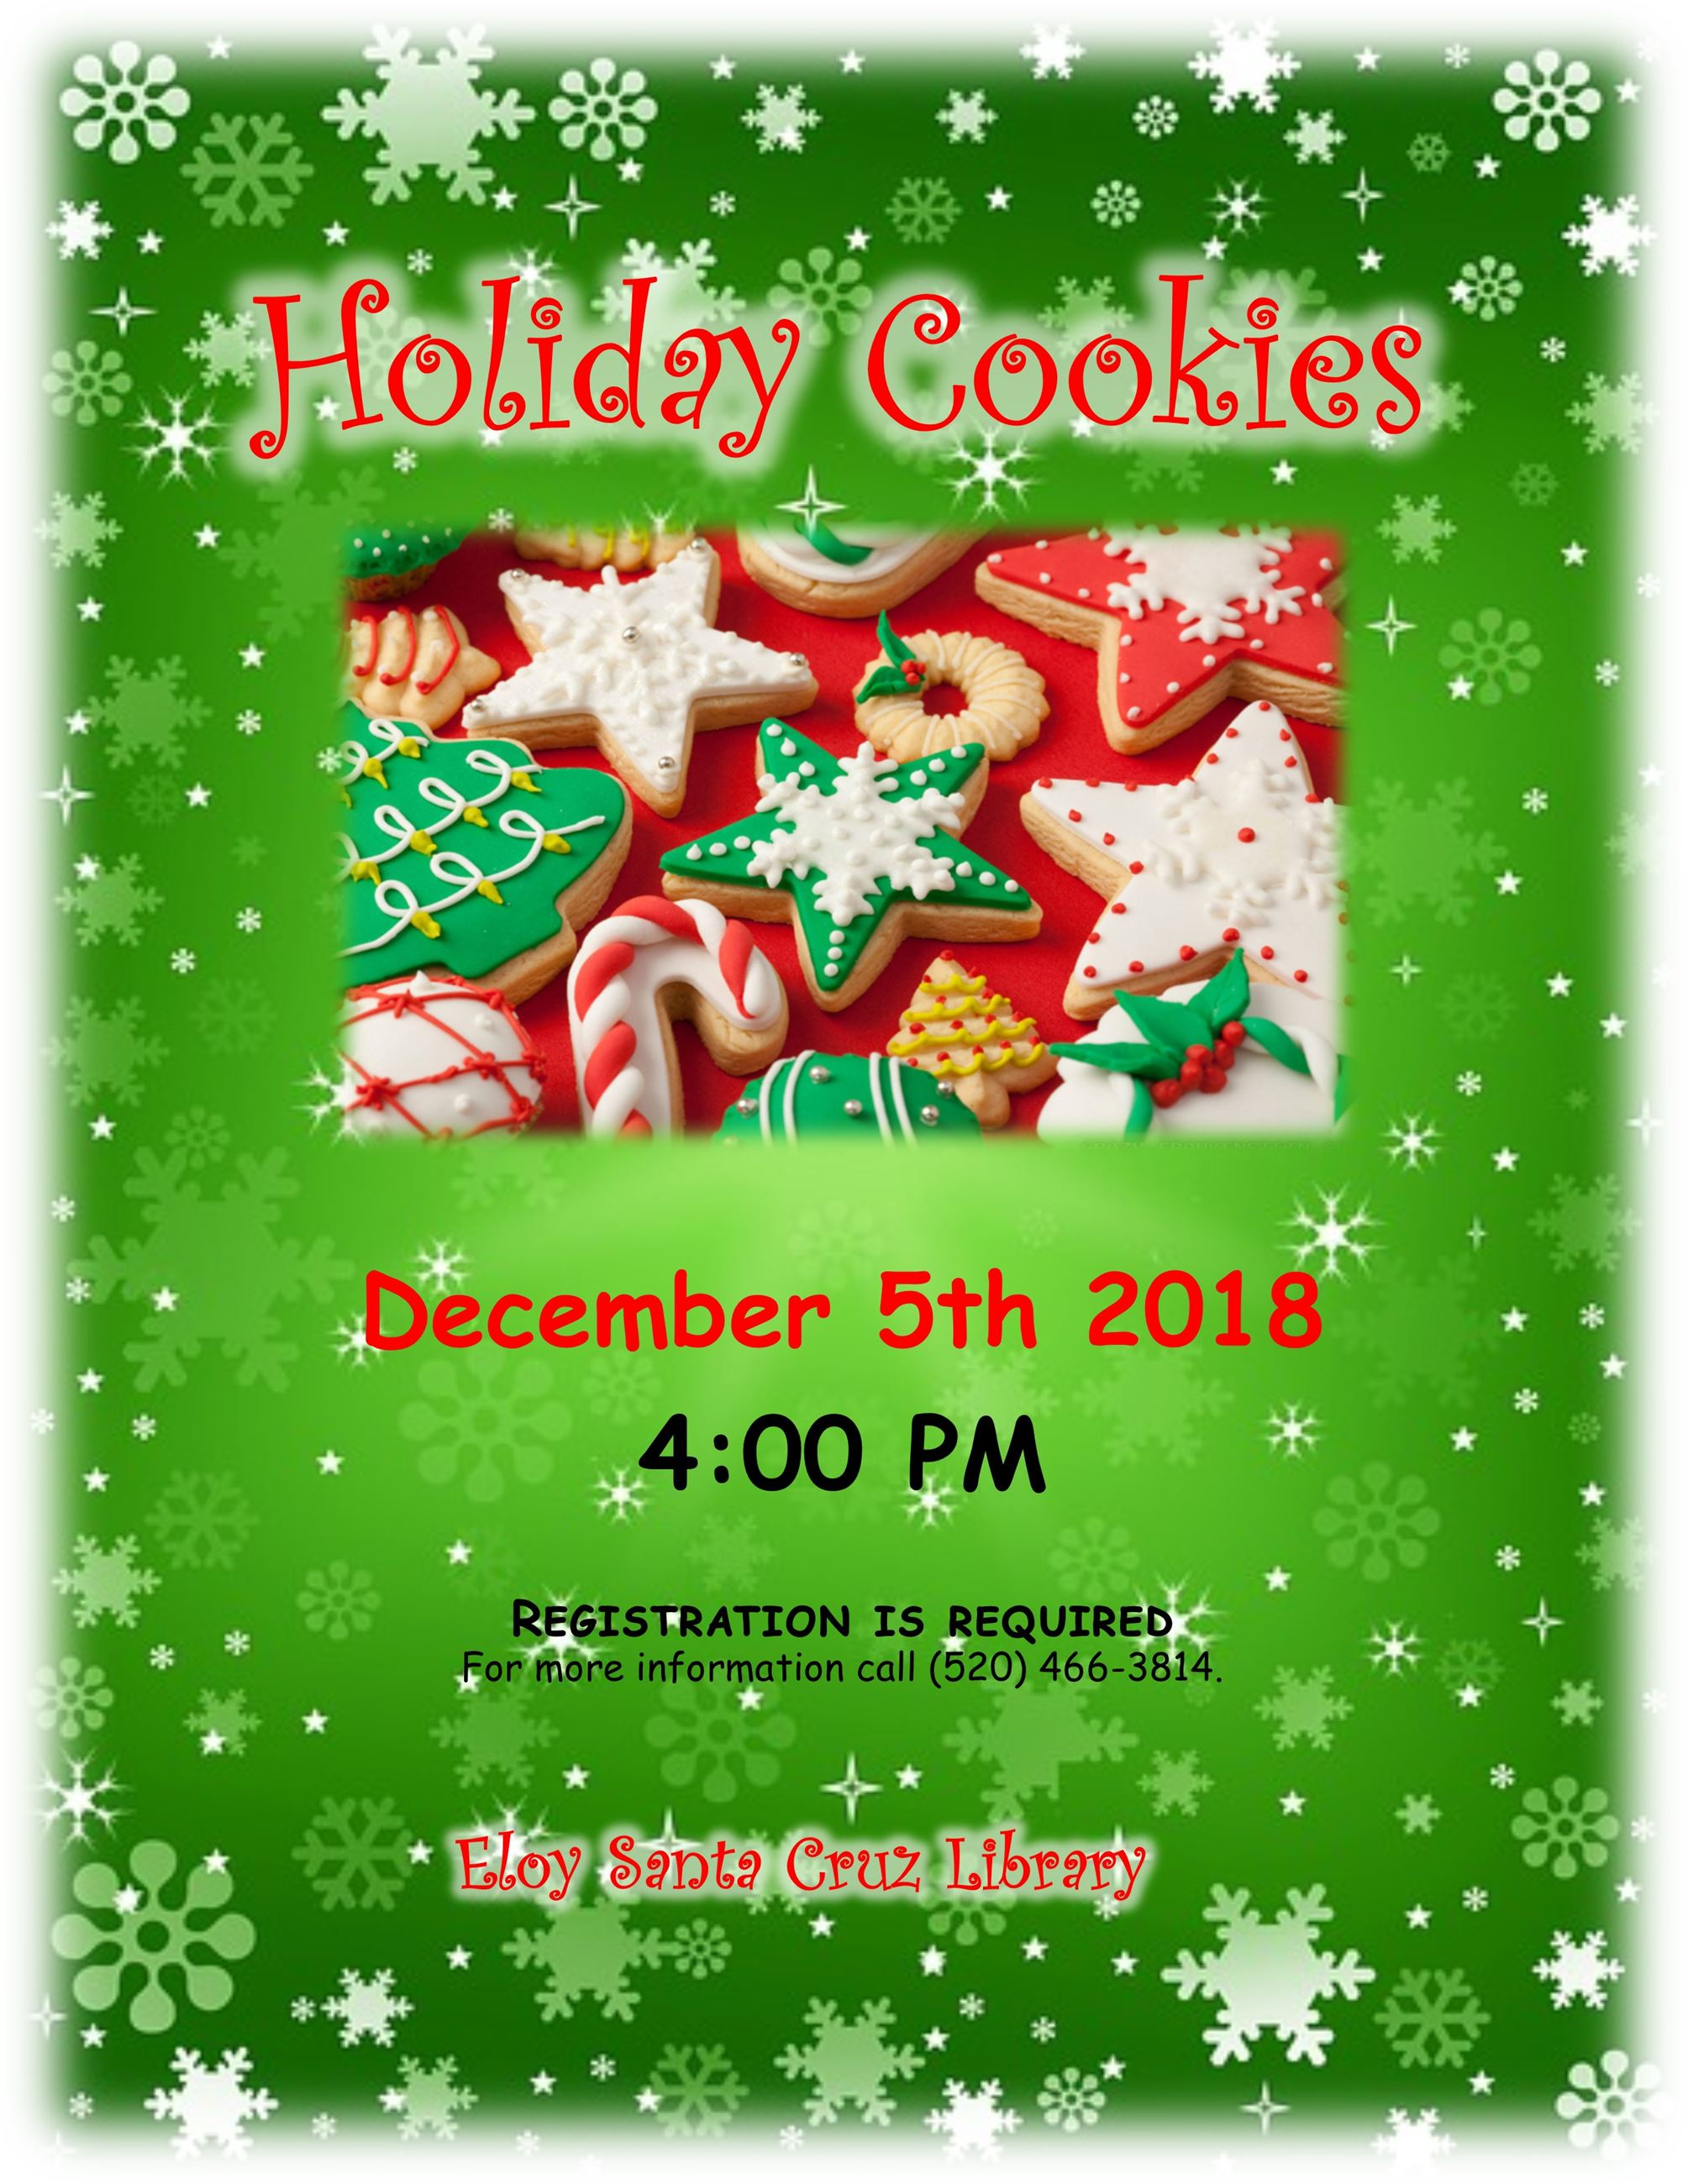 Cookies holiday